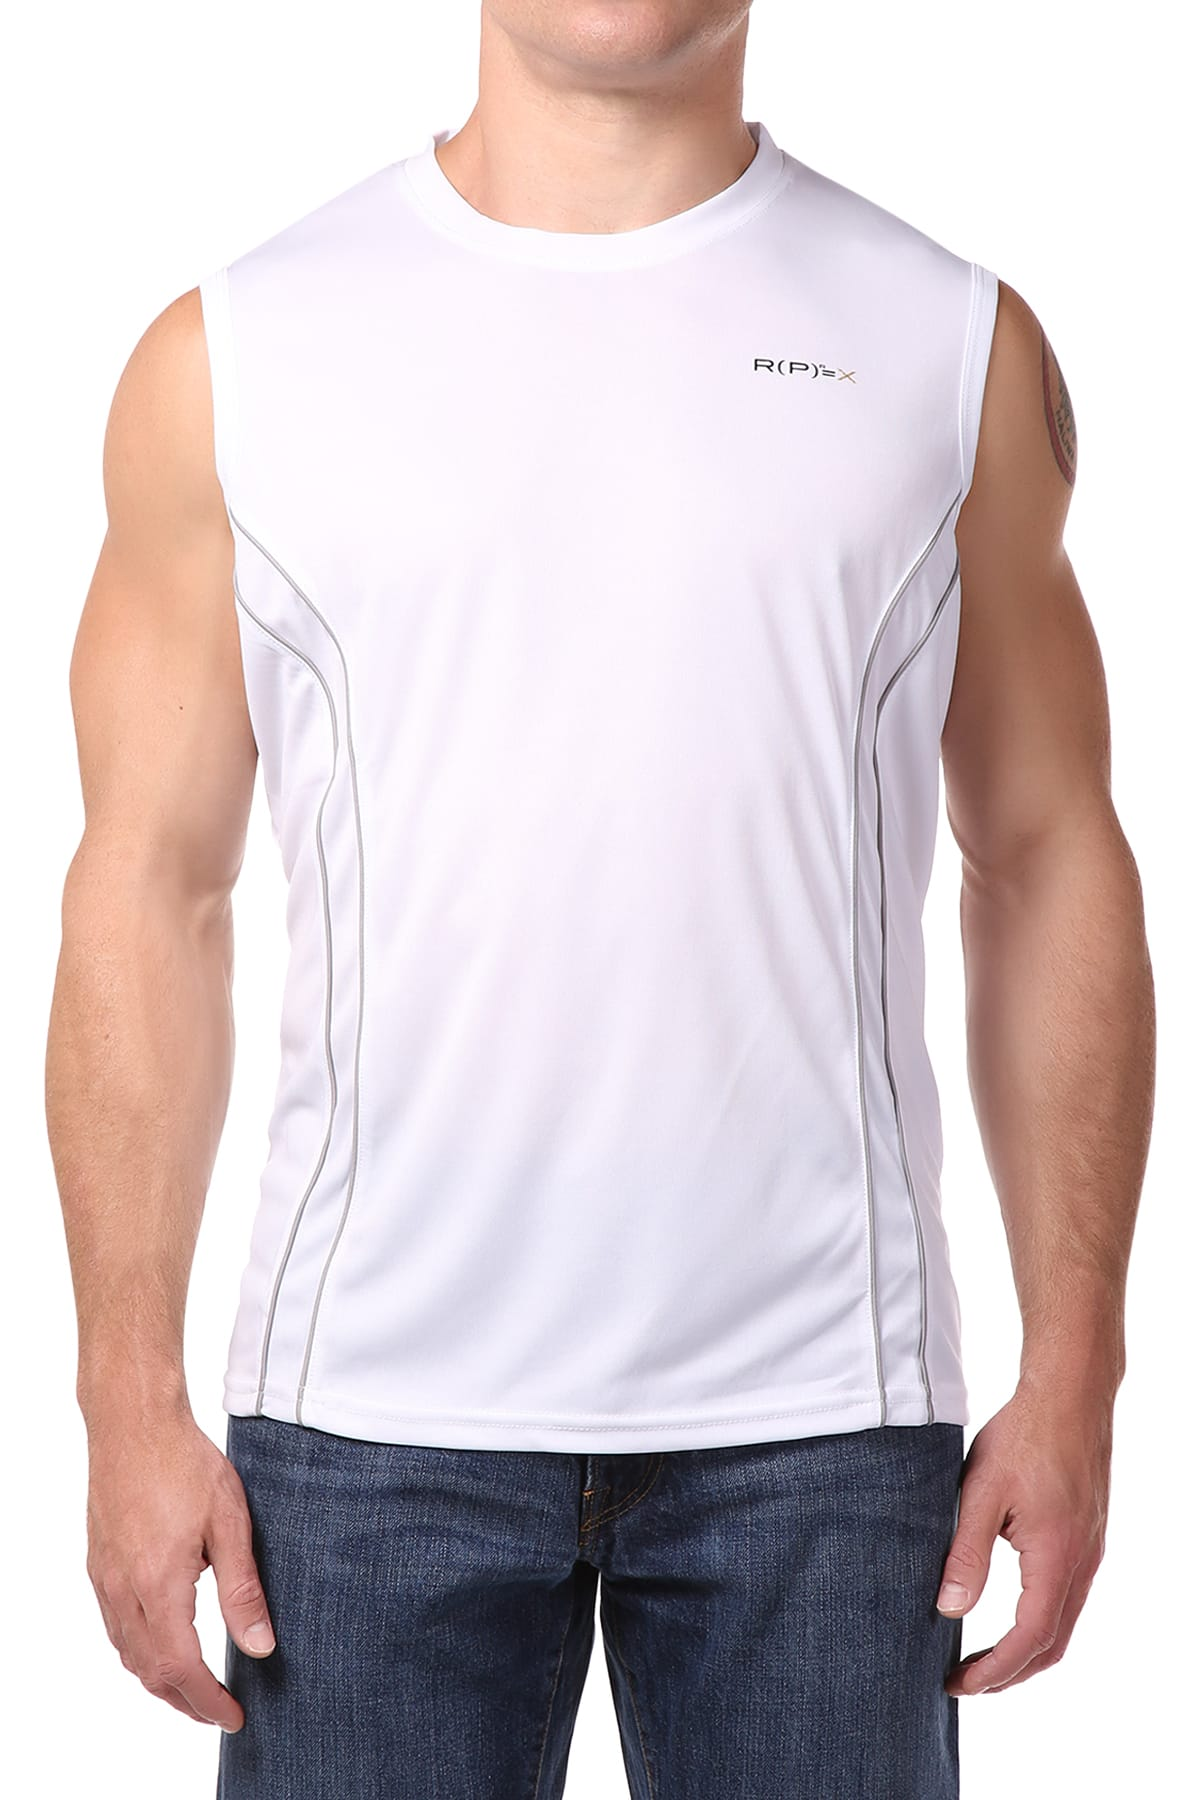 RPX White Crew-Neck Muscle Tank